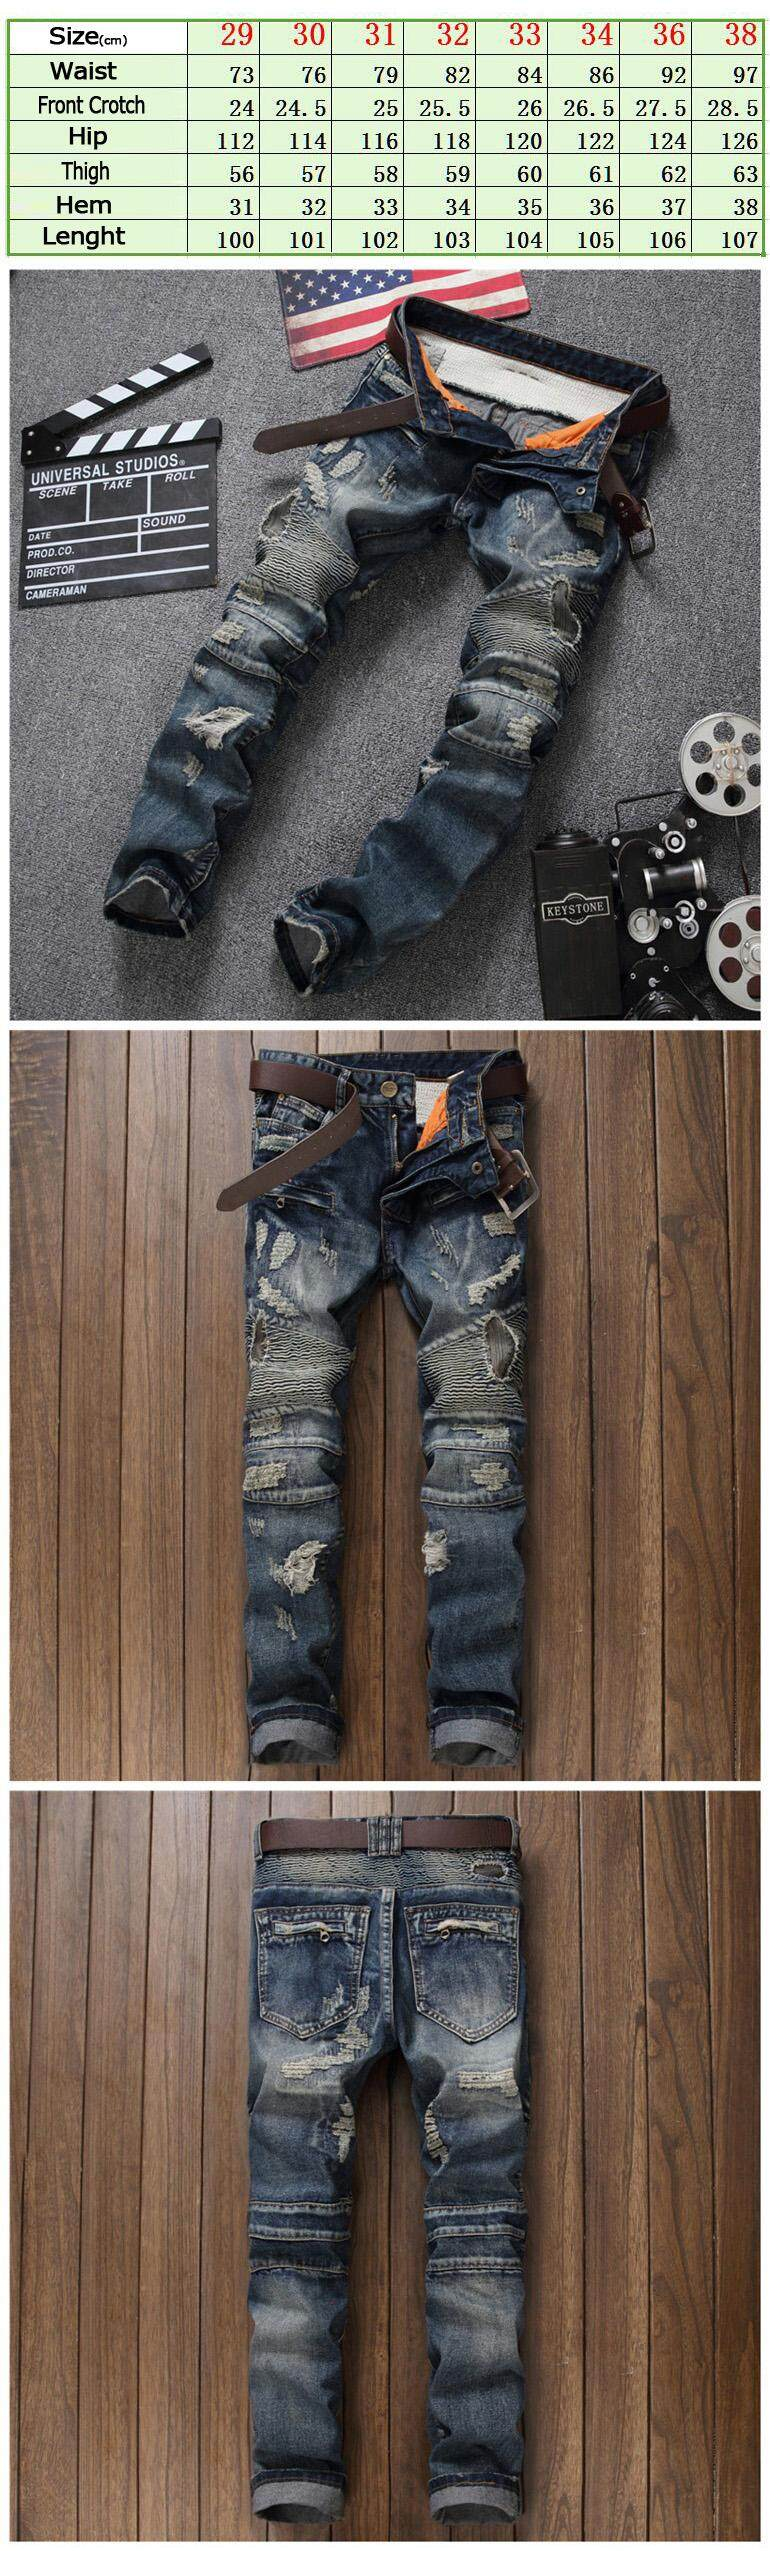 69677c1494a Product details of 2019 Fashion Men's Ripped Biker Jeans Brand Designer  Distressed Vintage Washed Denim Pants With Hole Patch Pleated Jeans For Men  Size ...